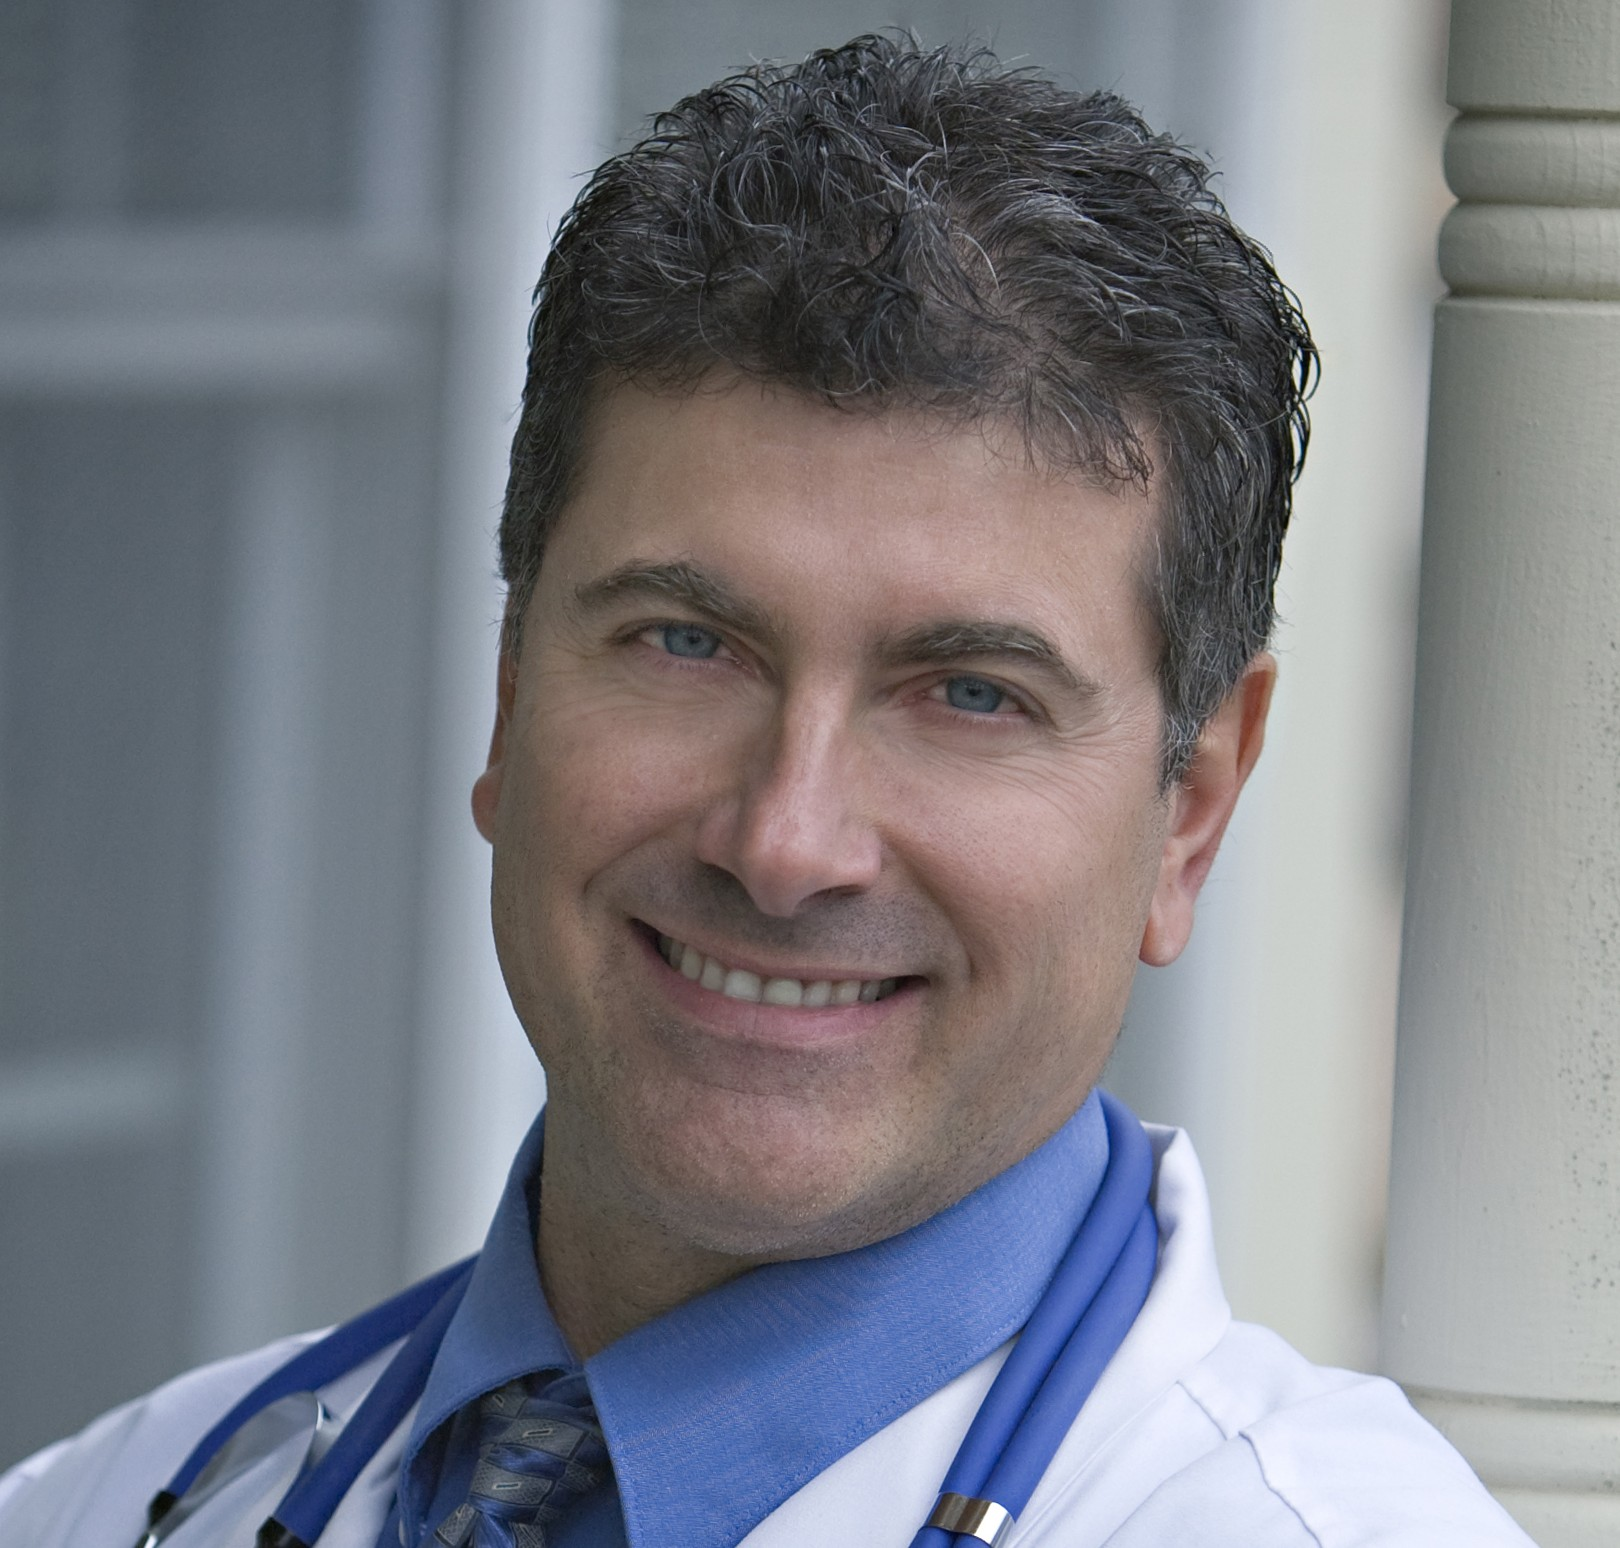 Dr. John Sabatini, DO